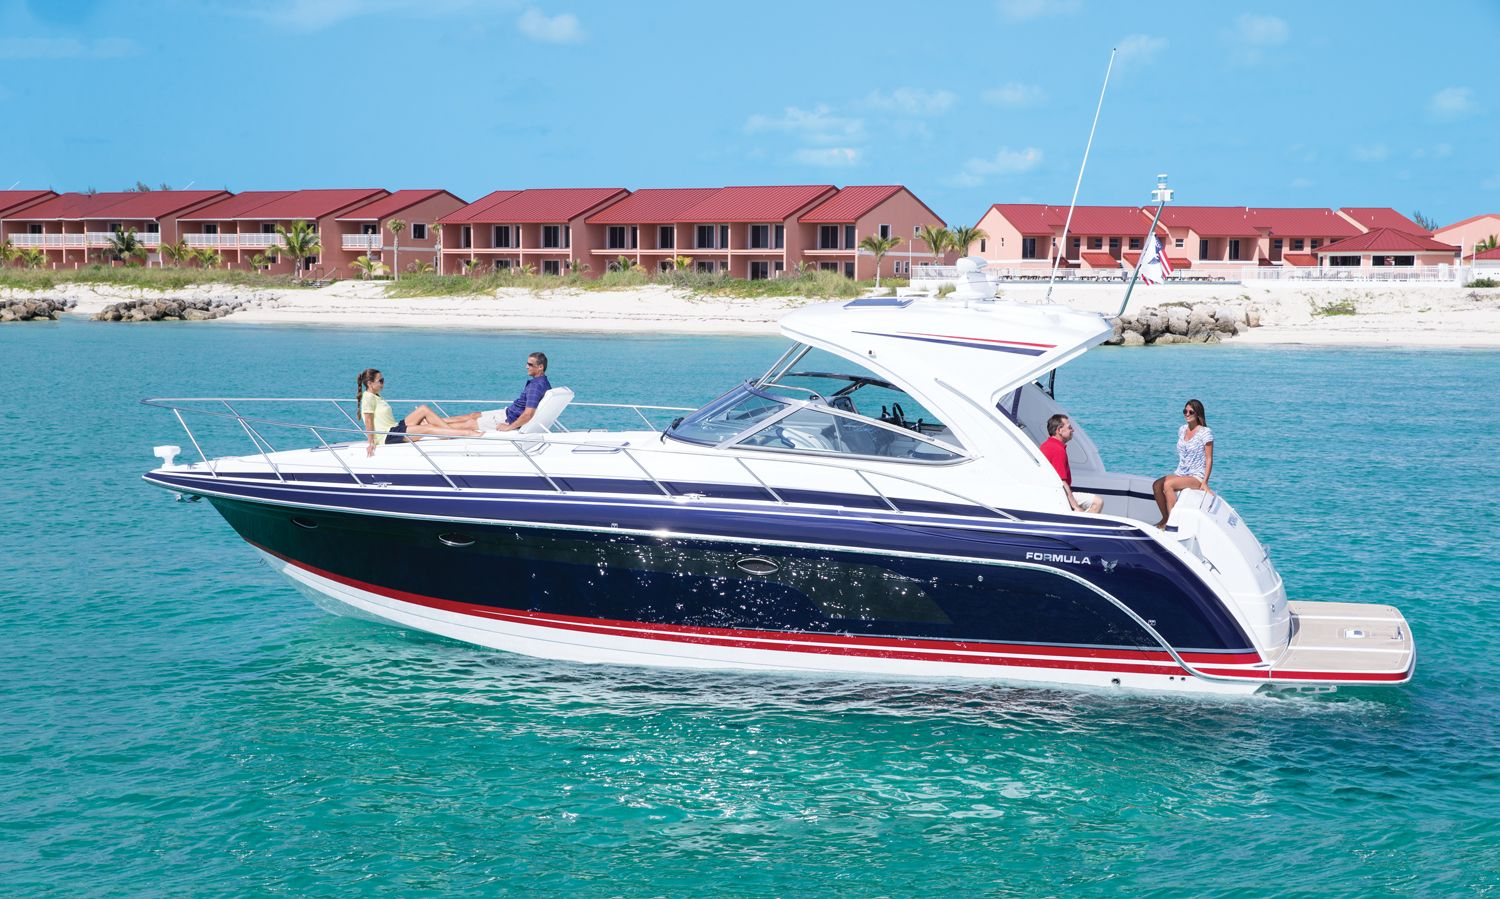 ChicagoYachtWorks Chicago IL Illinois Boats Yachts